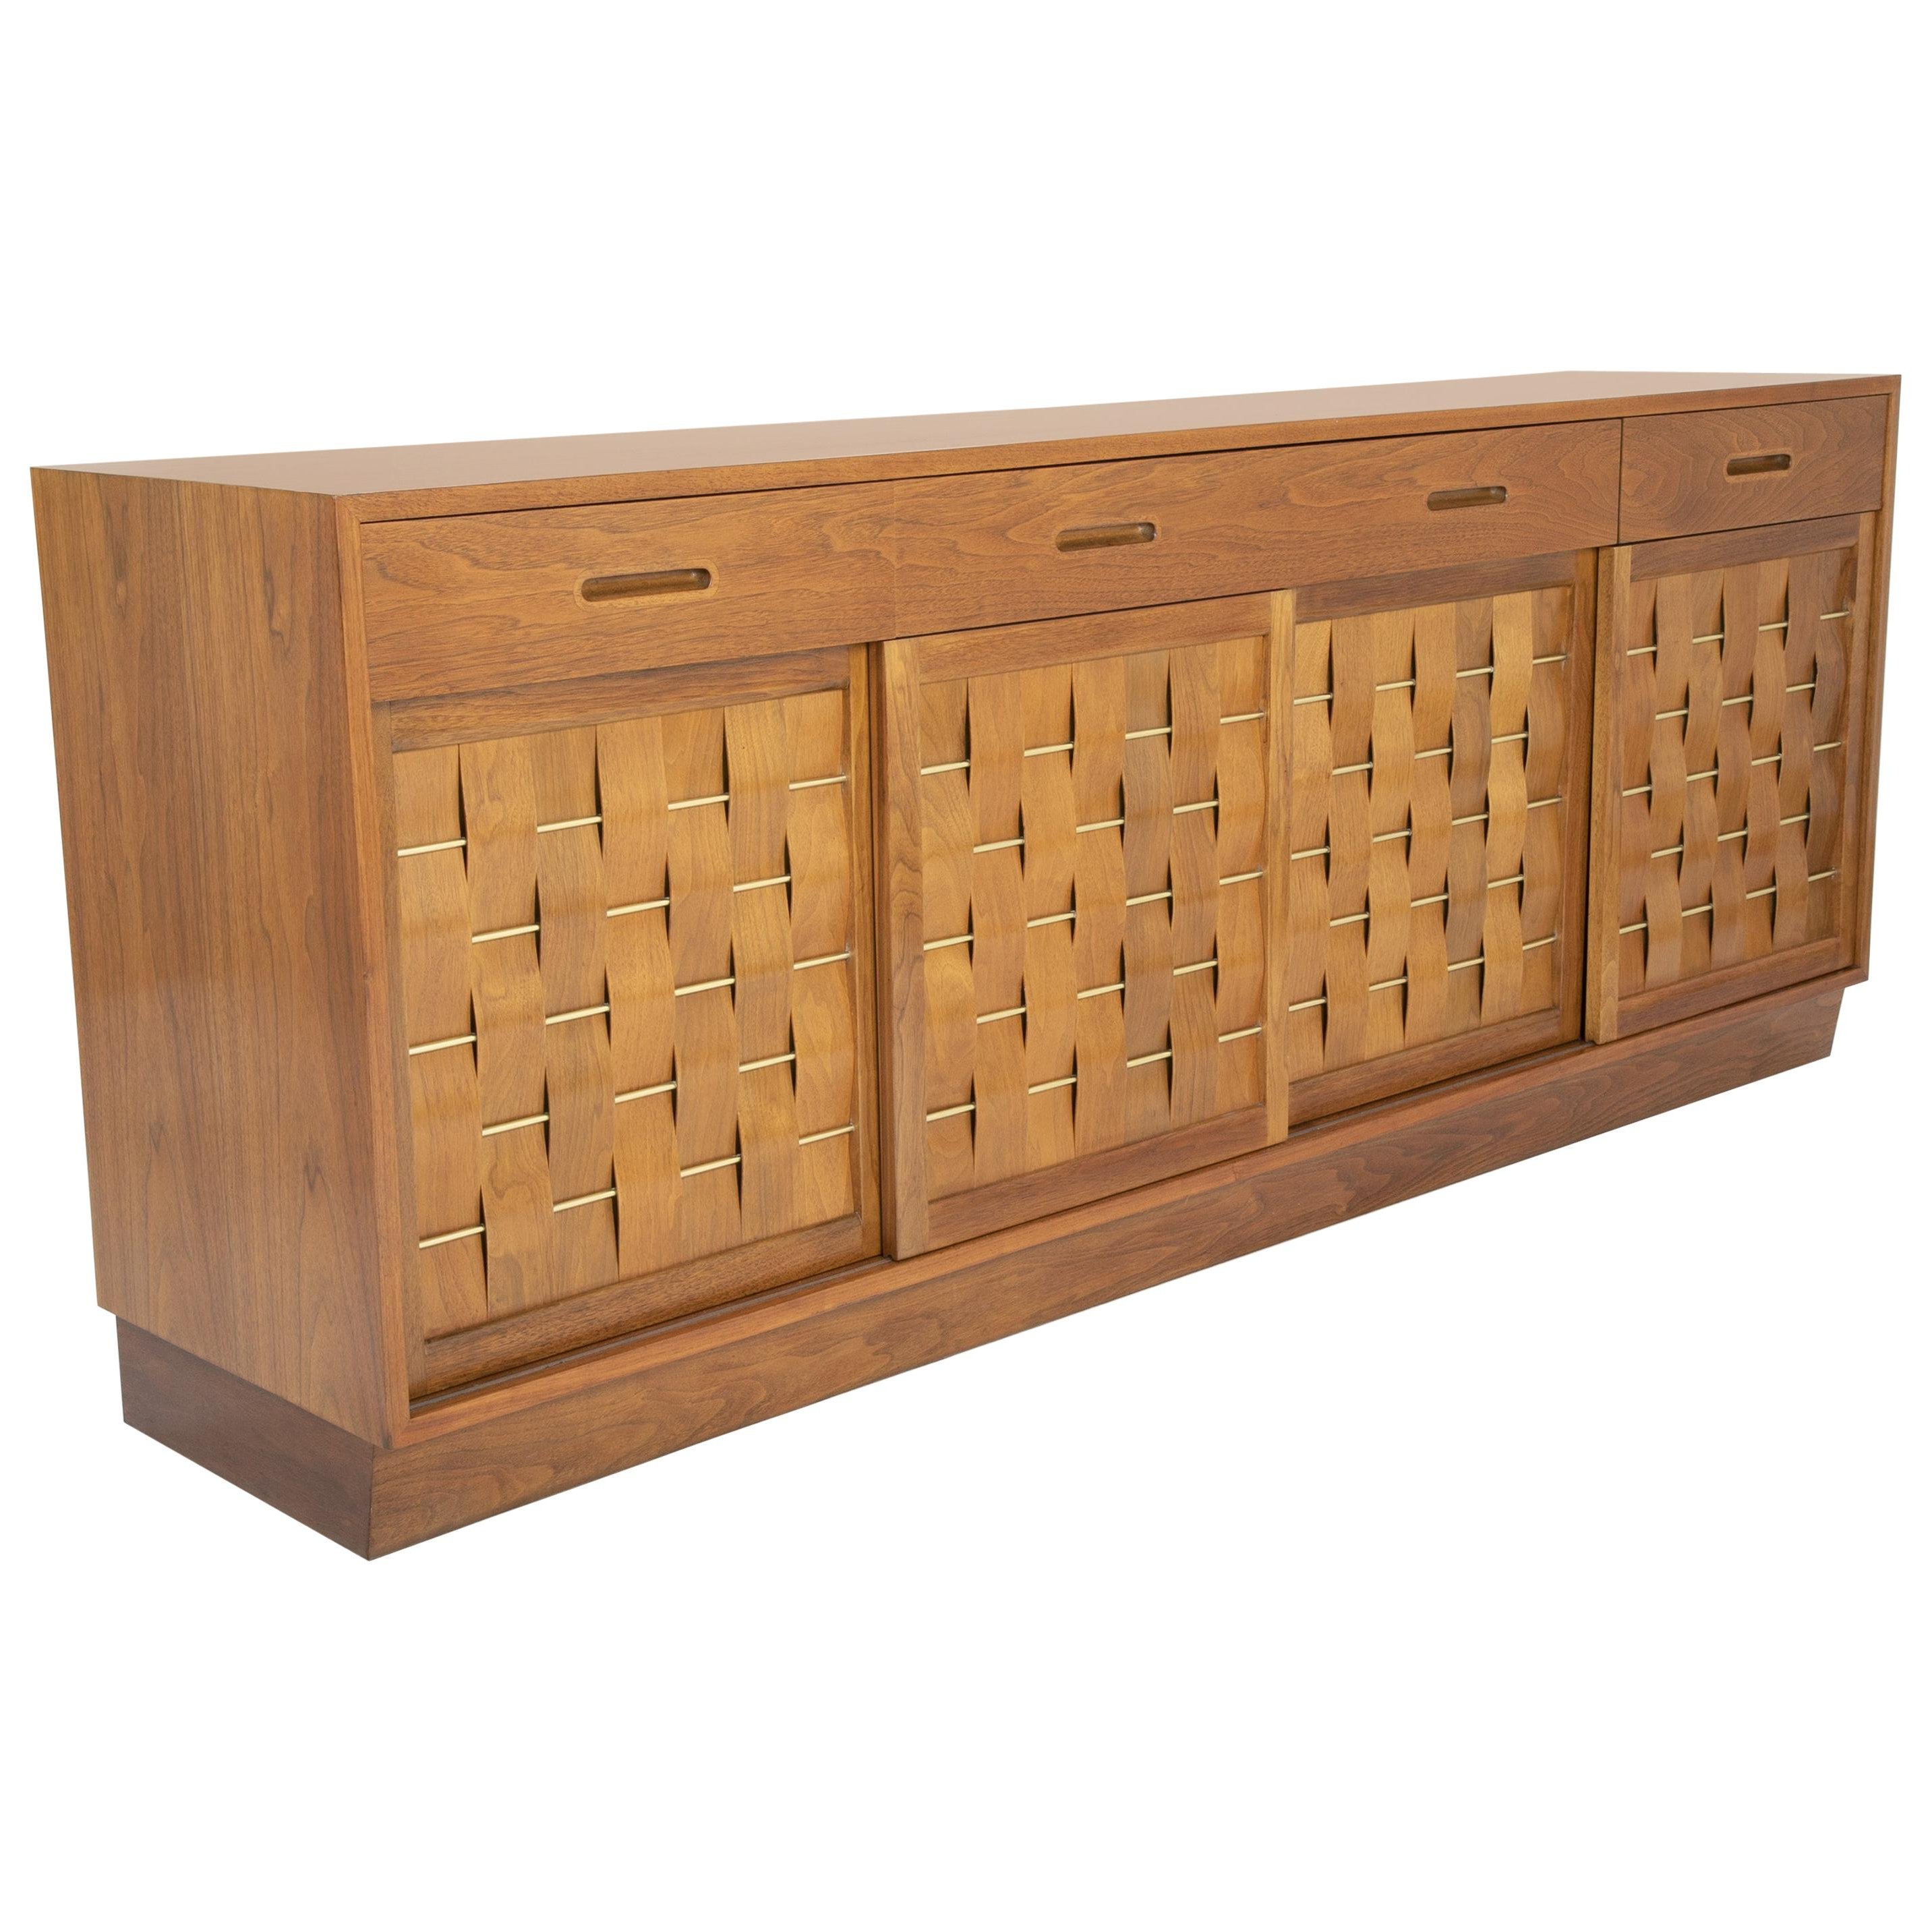 Preferred Edward Wormley Sideboards – 38 For Sale At 1Stdibs Within Gertrude Sideboards (View 16 of 20)